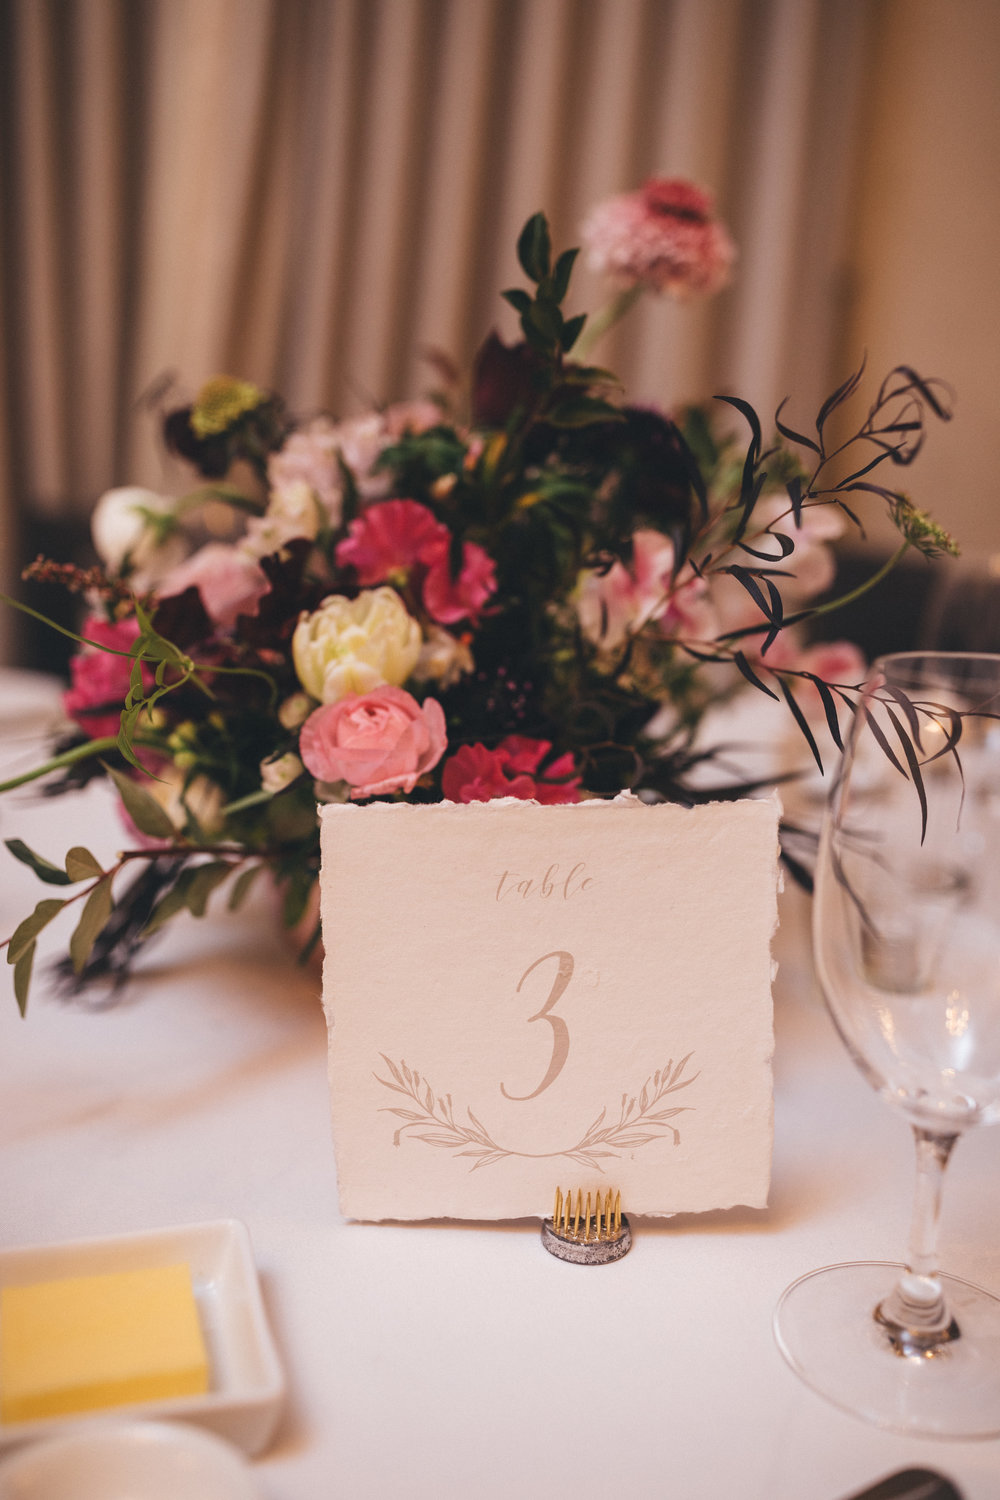 Table numbers - Not every reception venue provides table numbers, or you may not fancy those provided. We can ensure we design table numbers that match your table setting to further add cohesiveness to the overall wedding aesthetic.